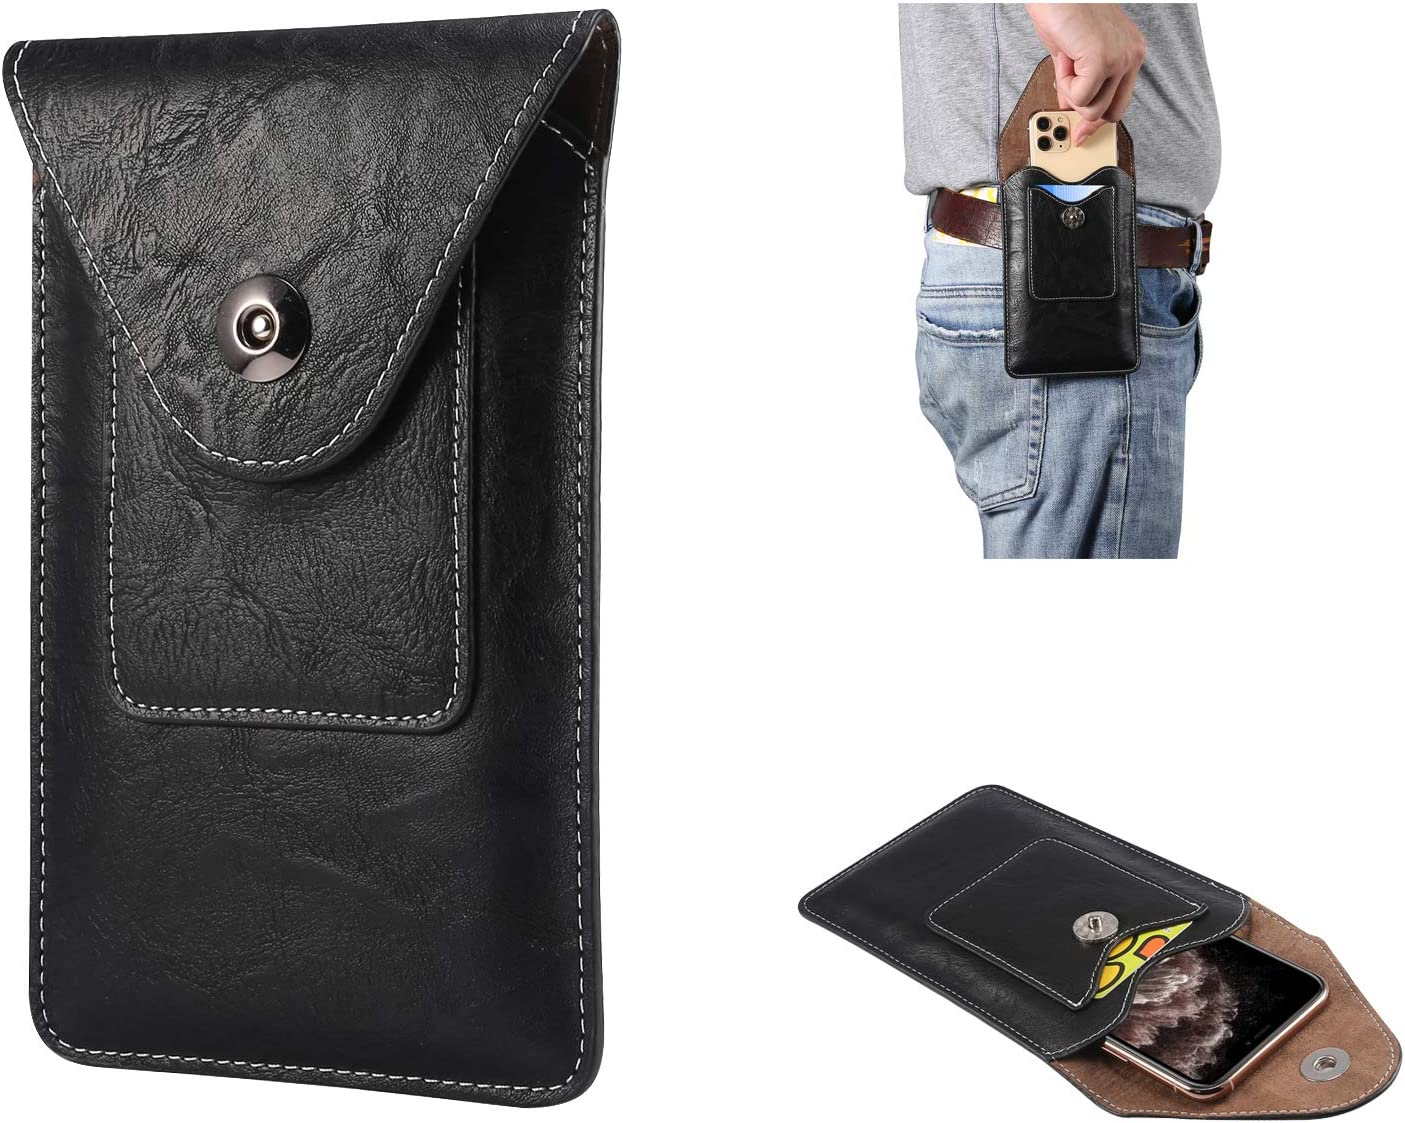 Leather Cellphone Holster Case with Belt Clip Pouch Case for Samsung S20+,Note10+,Note 10 Lite,A81,A10S Vertical Belt Holster Pouch Belt Loop Phone Holder for Men,for iPhone11 Pro Max/XS Max/6s Plus